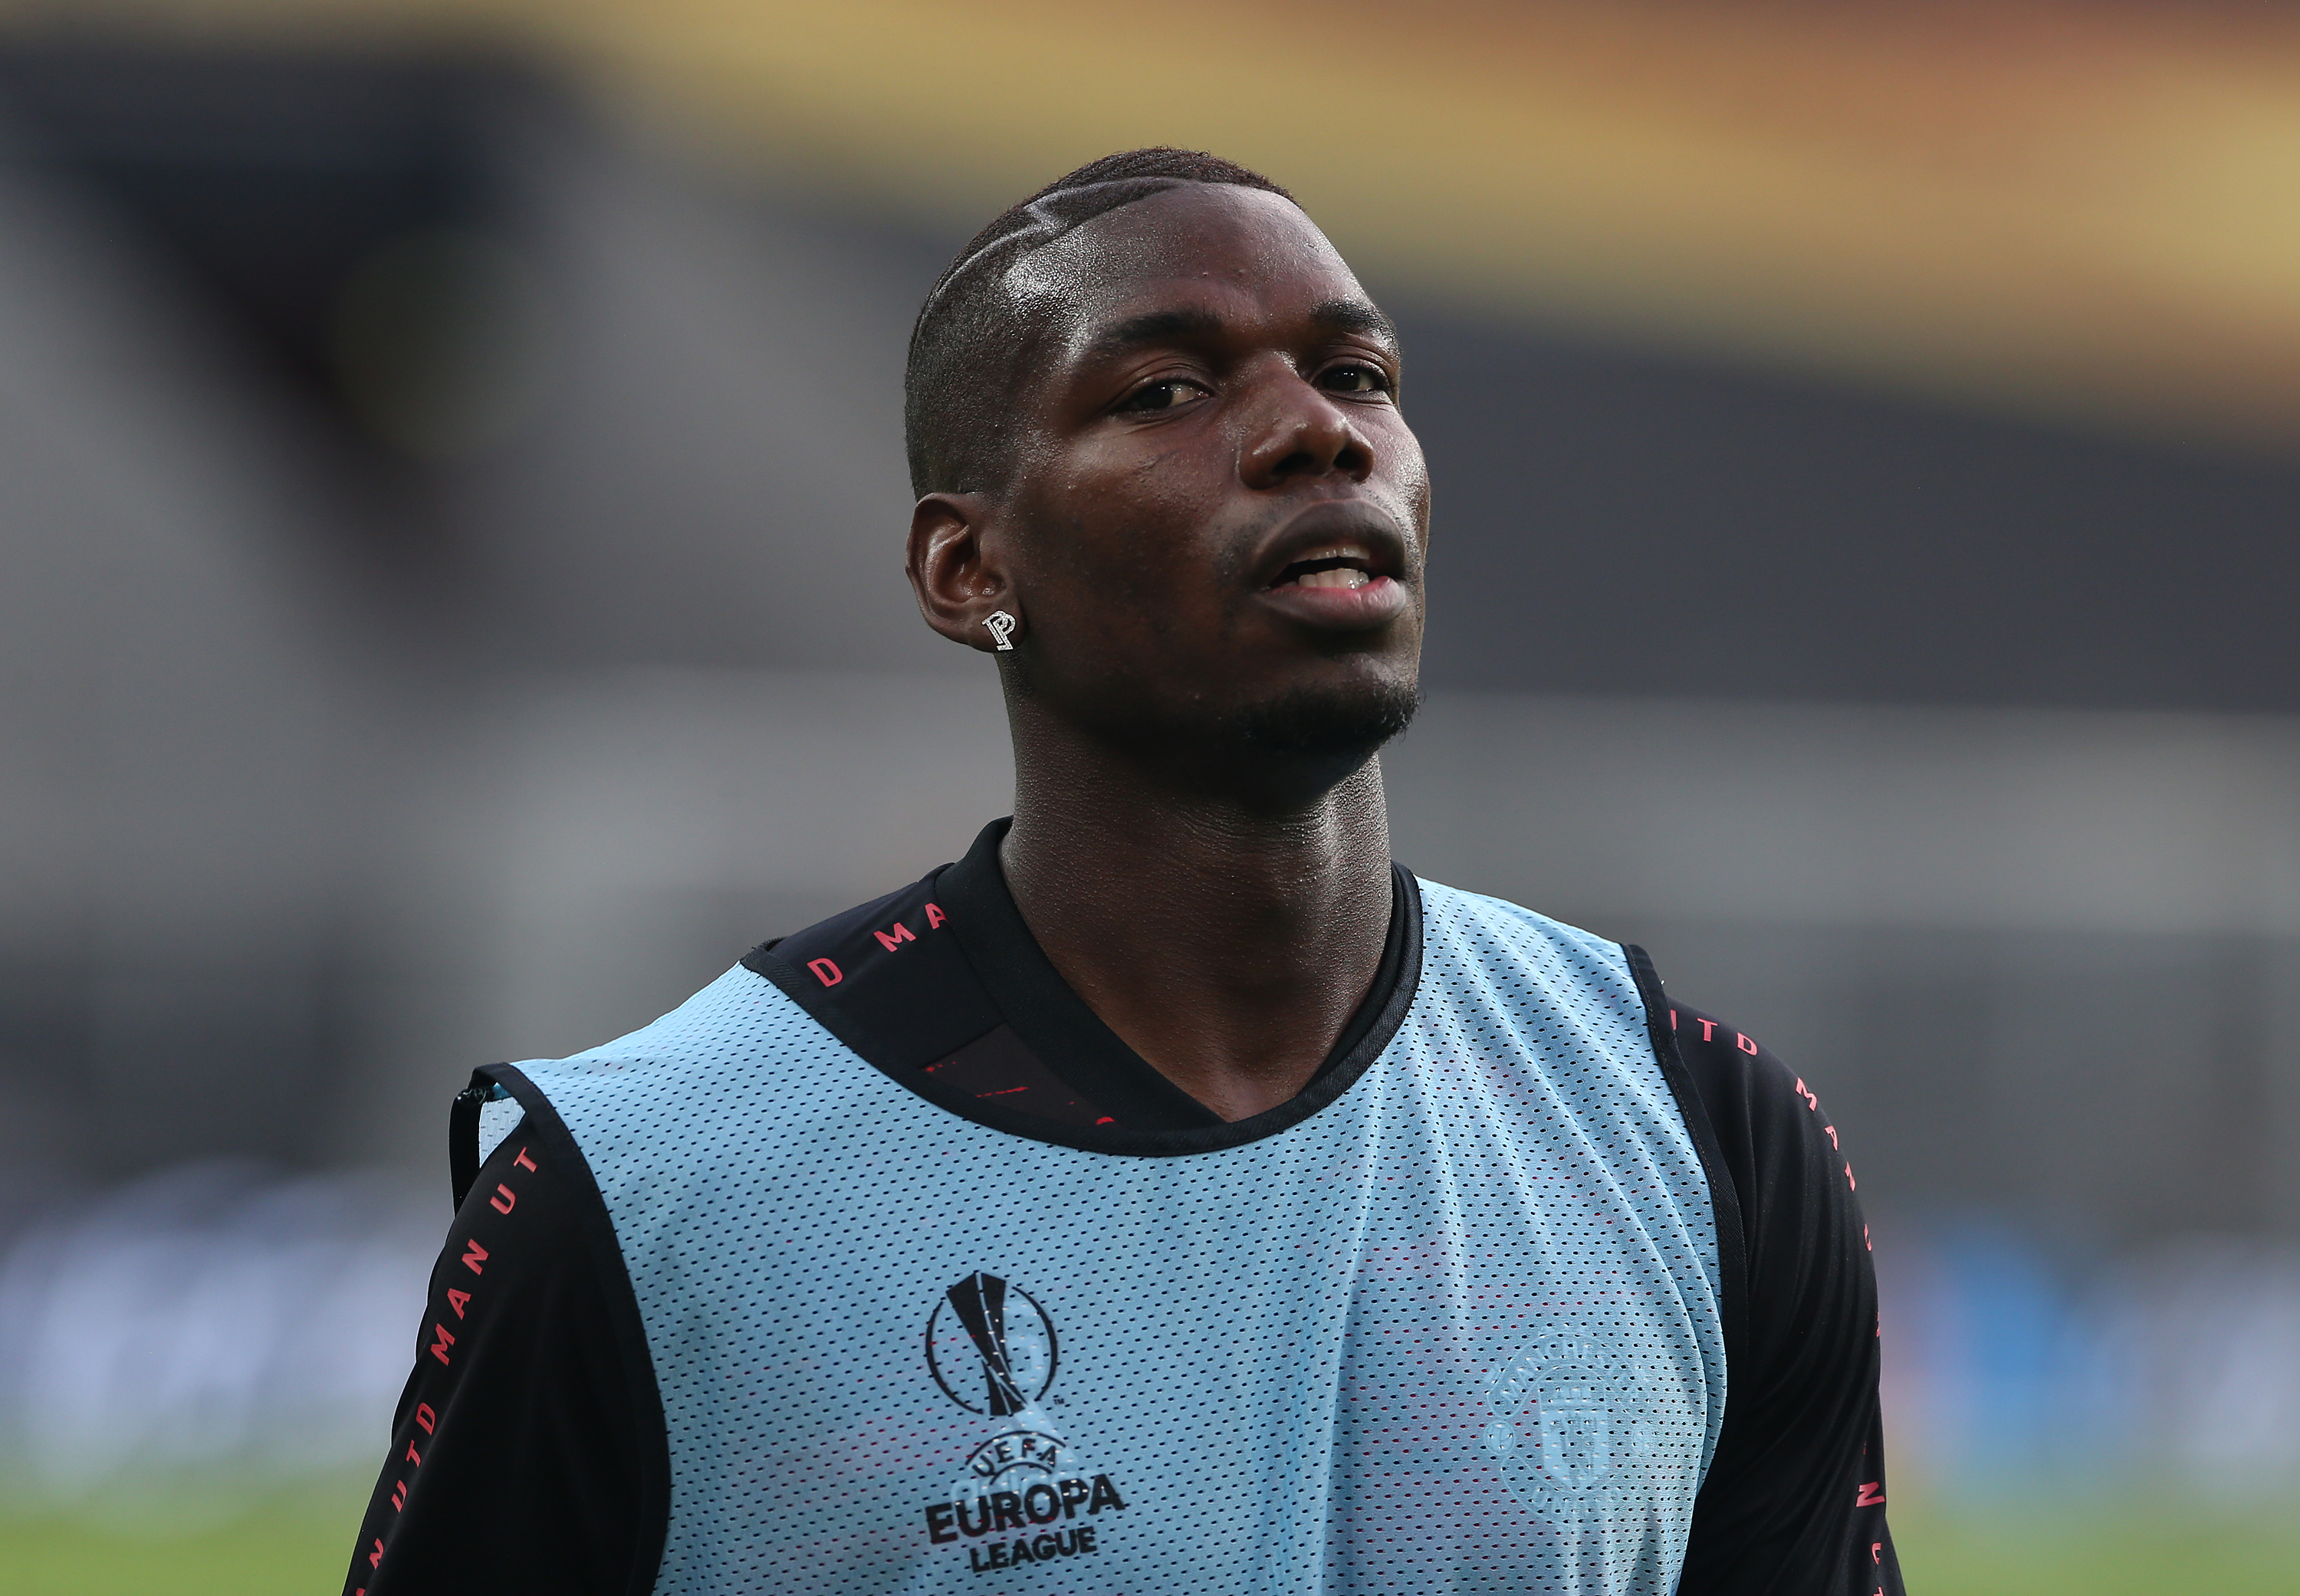 Manchester United's Paul Pogba tests positive for coronavirus